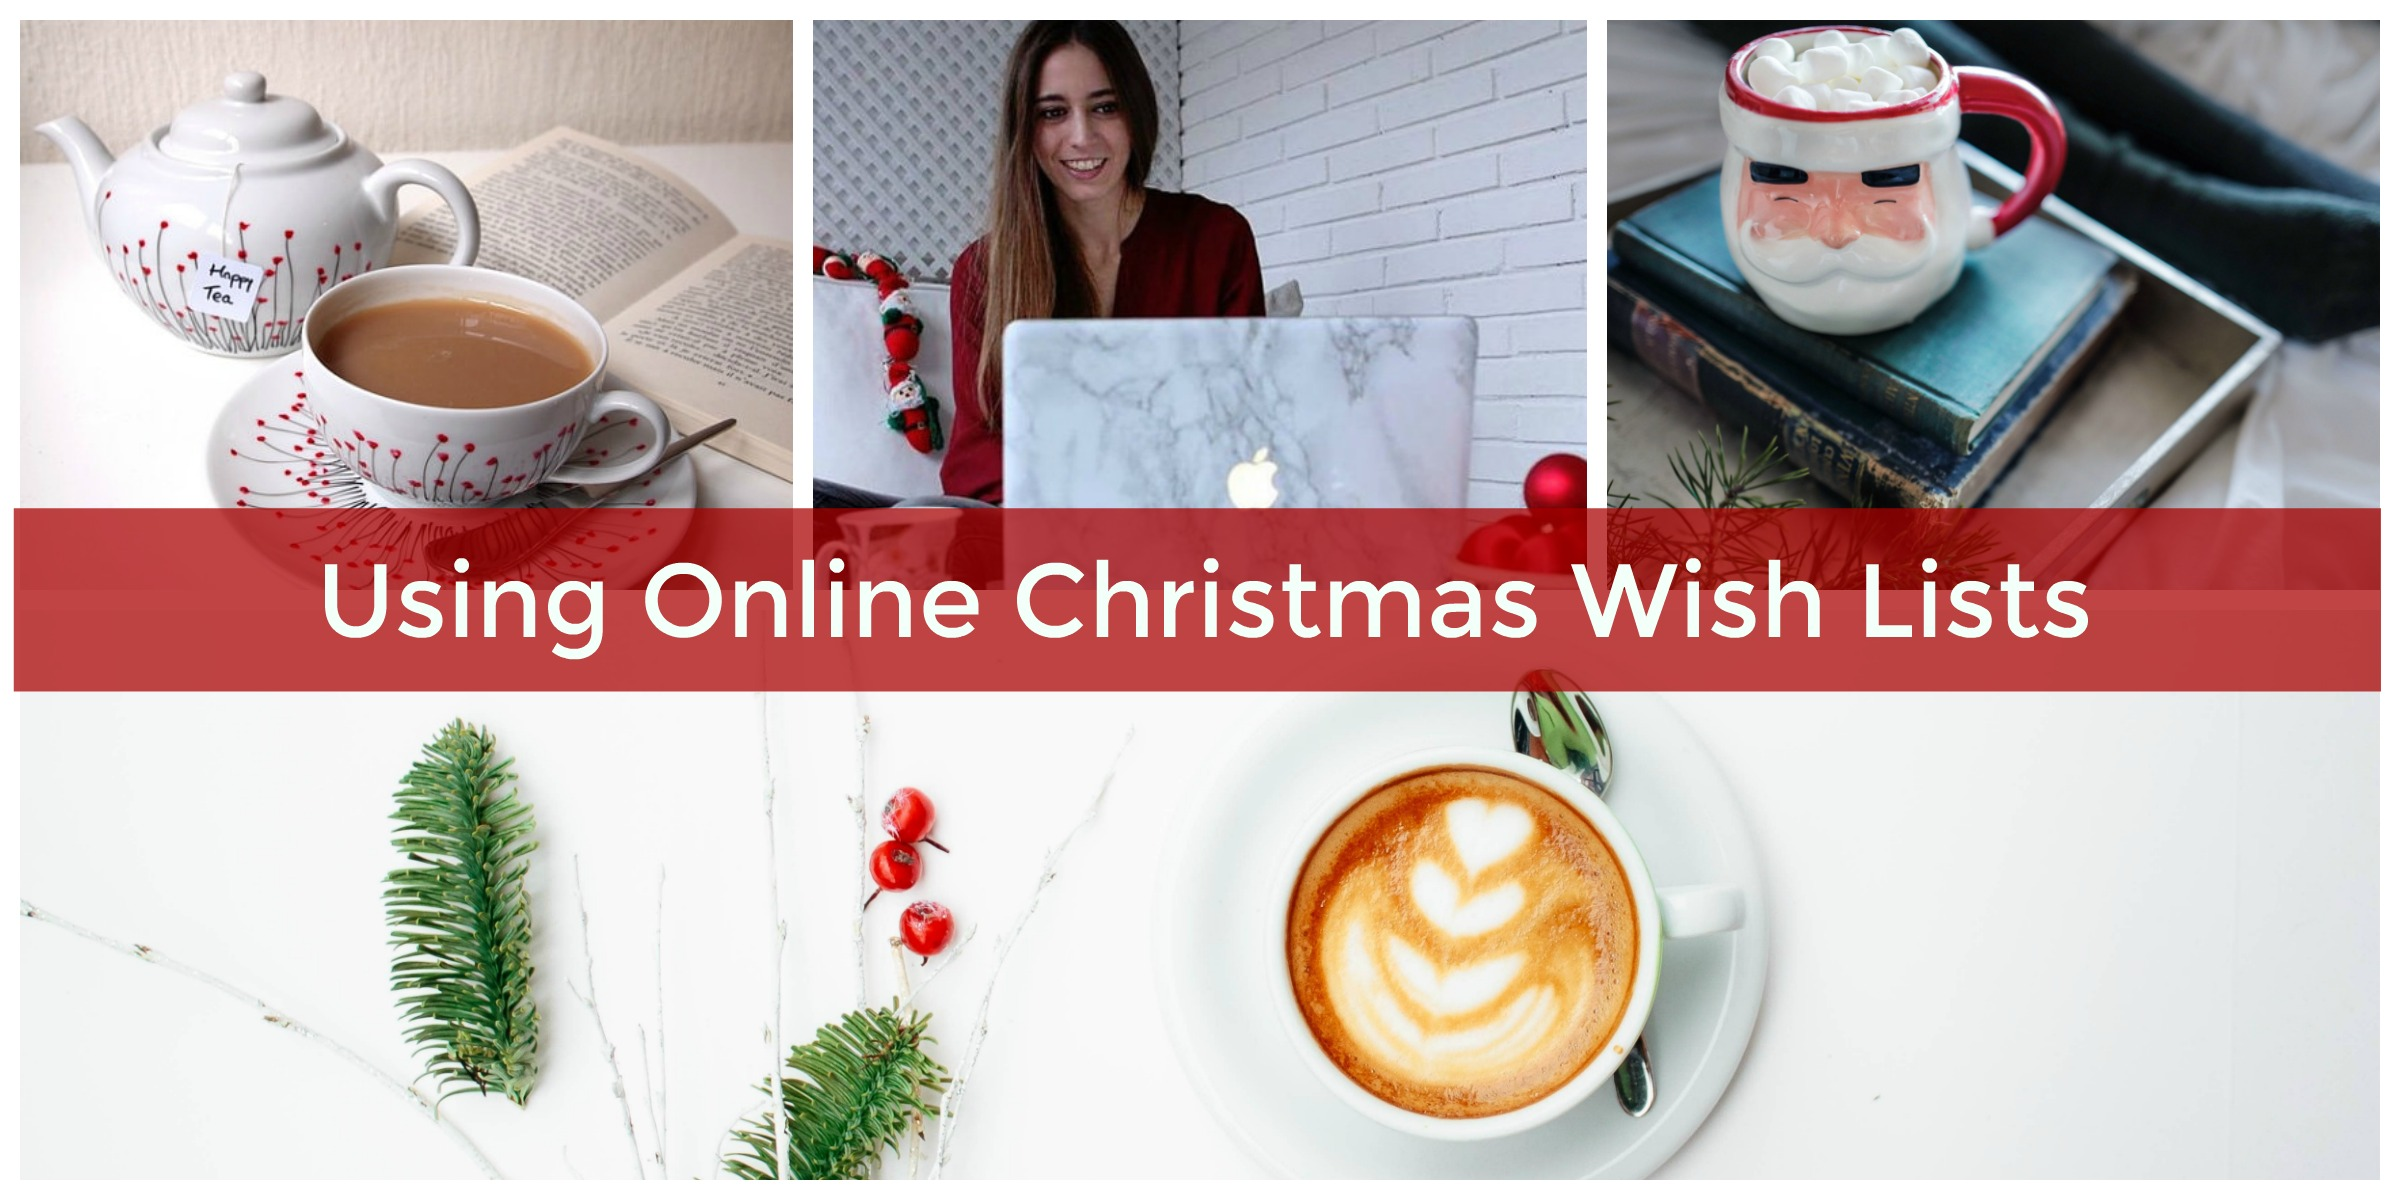 Christmas Wish List Ideas.Family Friendly Christmas Online Wish List Ideas That Are